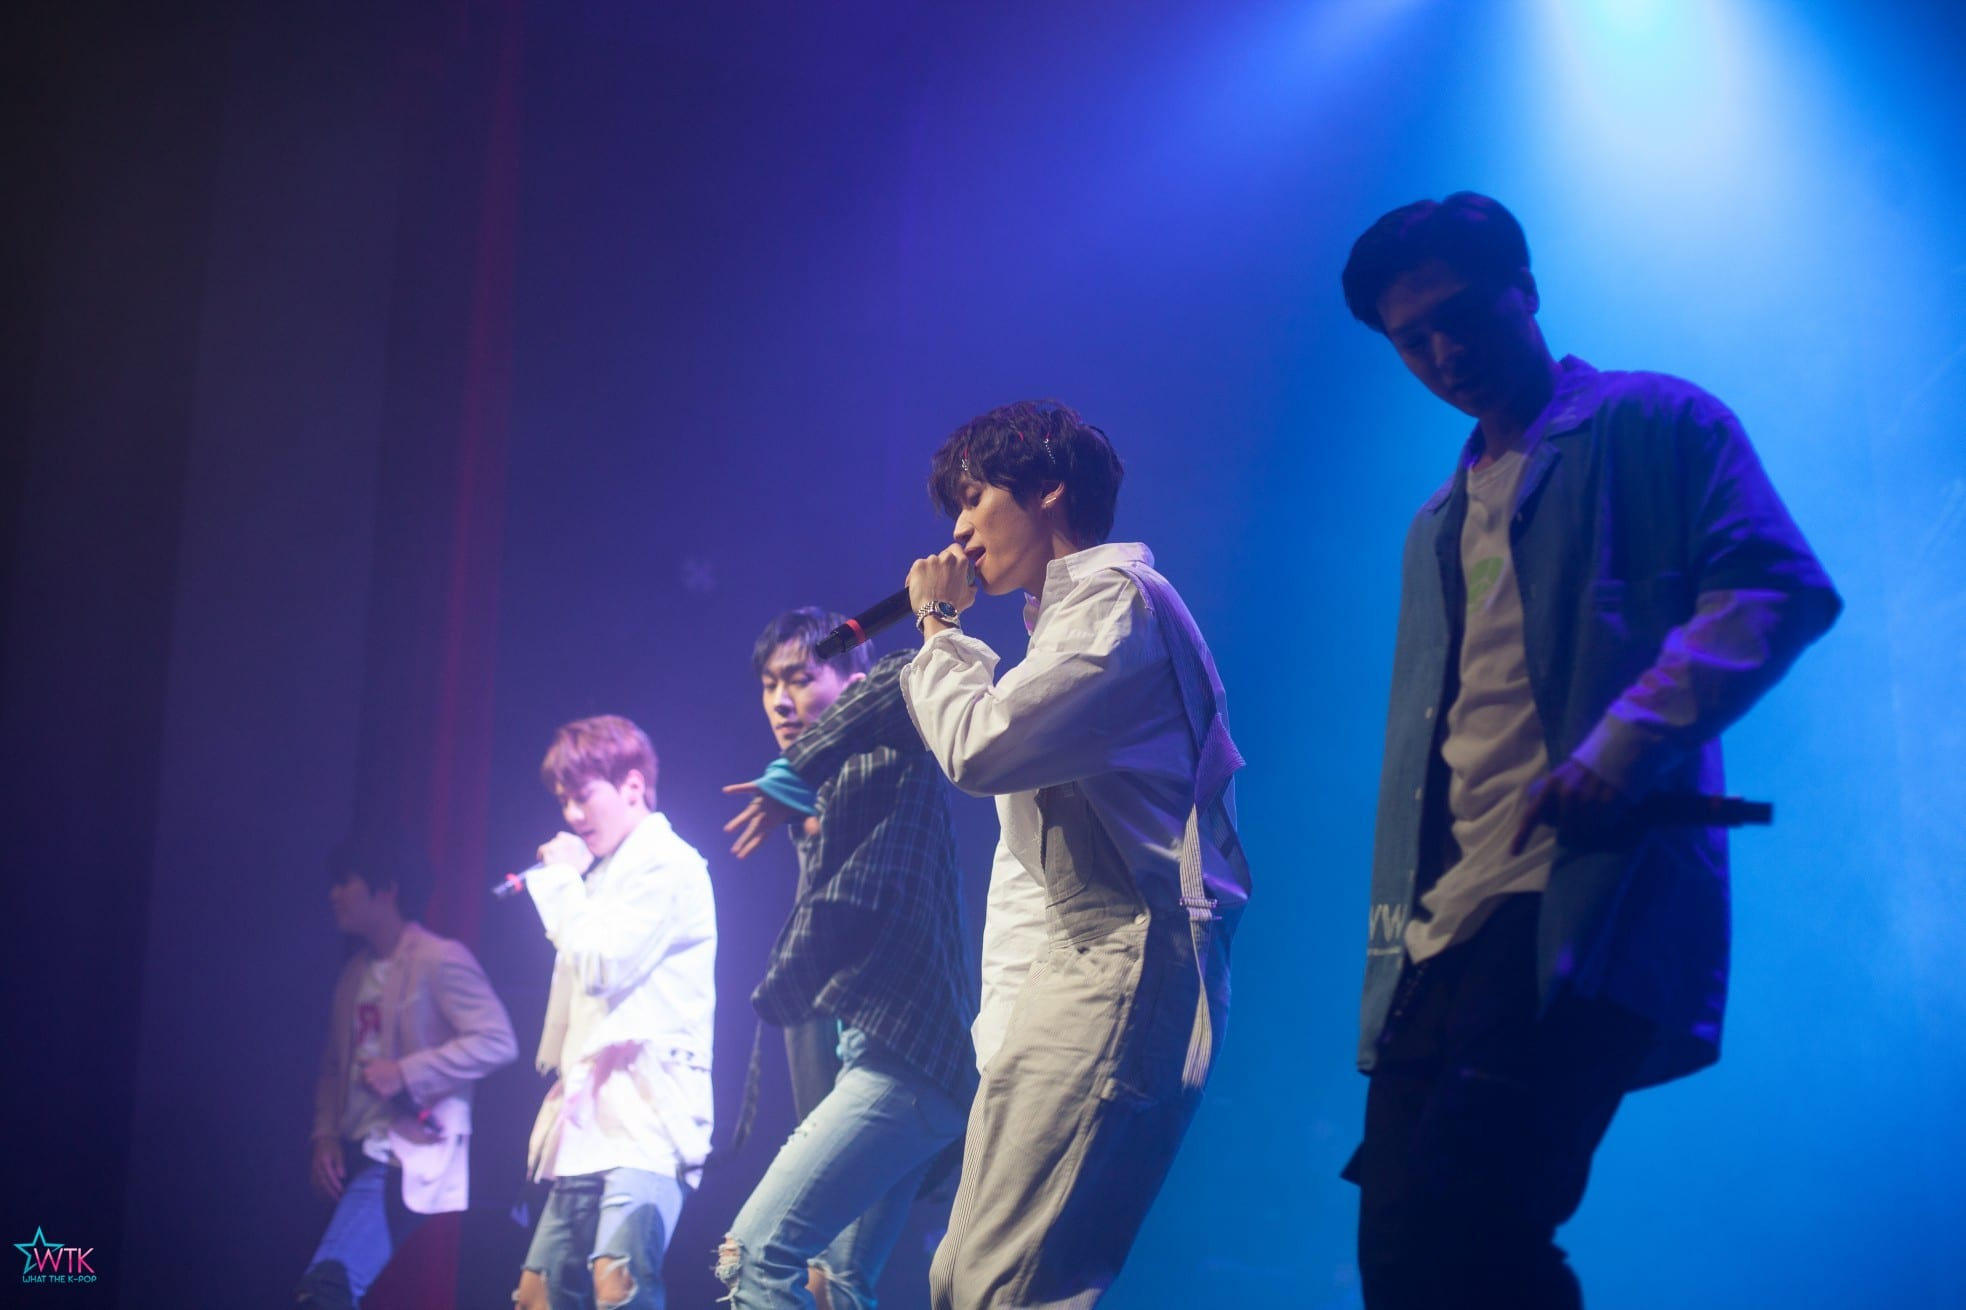 PHOTO GALLERY: Teen Top Thrills Fans With Stunning Tour In The USA